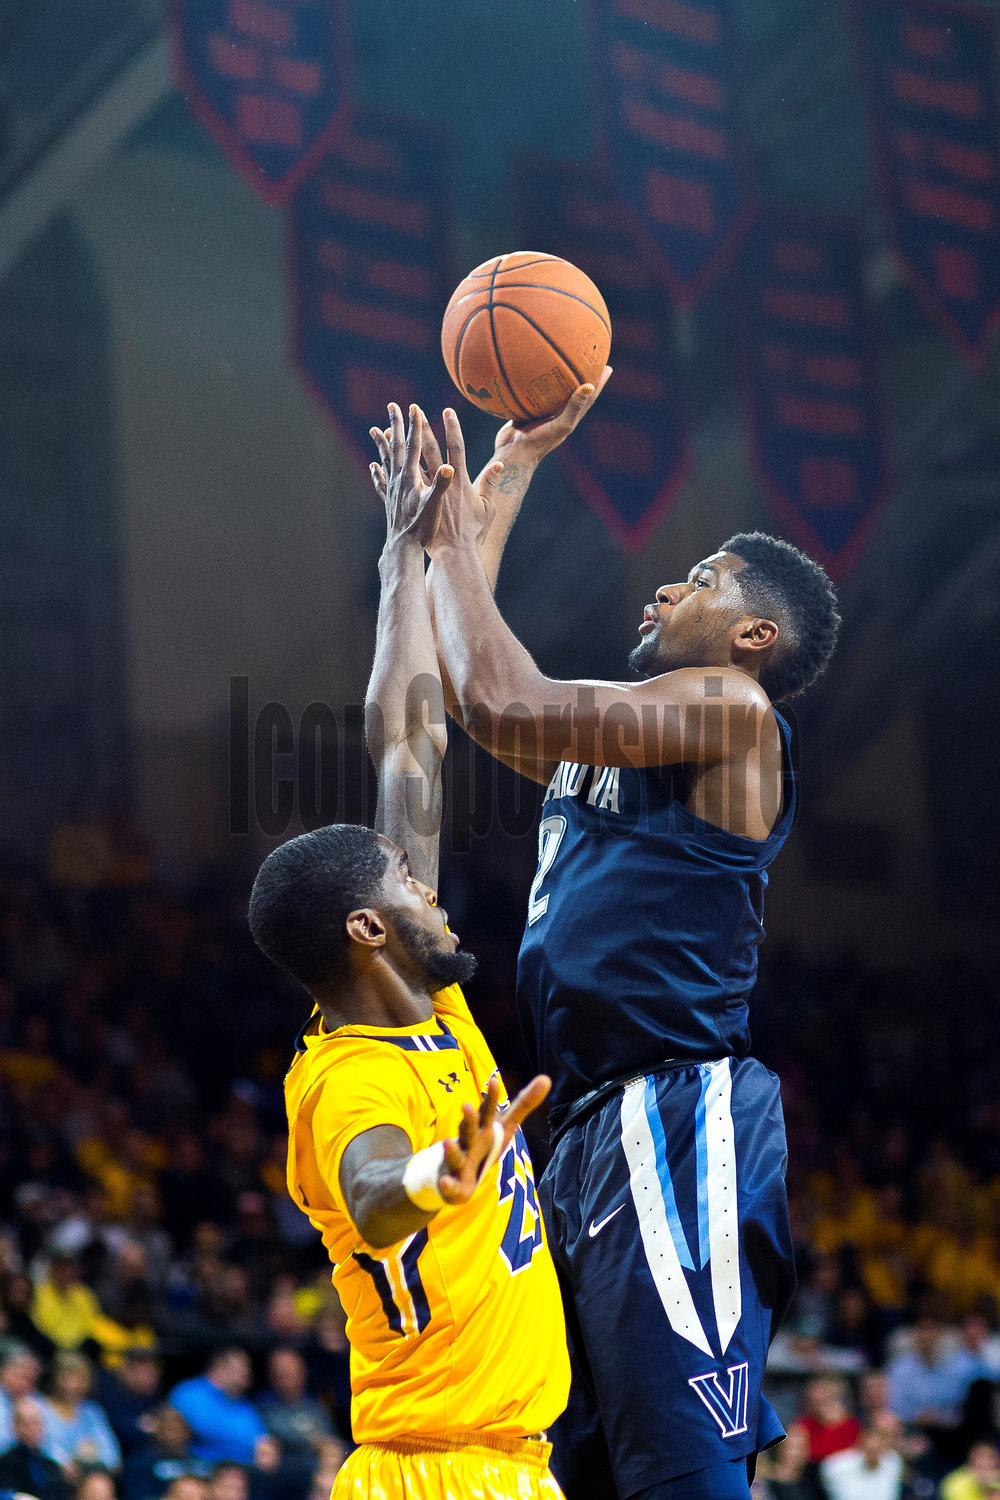 PHILADELPHIA, PA - DECEMBER 06: Villanova Wildcats forward Kris Jenkins (2) fires his jumper during the game between the LaSalle Explorers and the Villanova Wildcats on December 06, 2016 at the Palestra in Philadelphia PA. (Photo by Gavin Baker/Icon Sportswire)